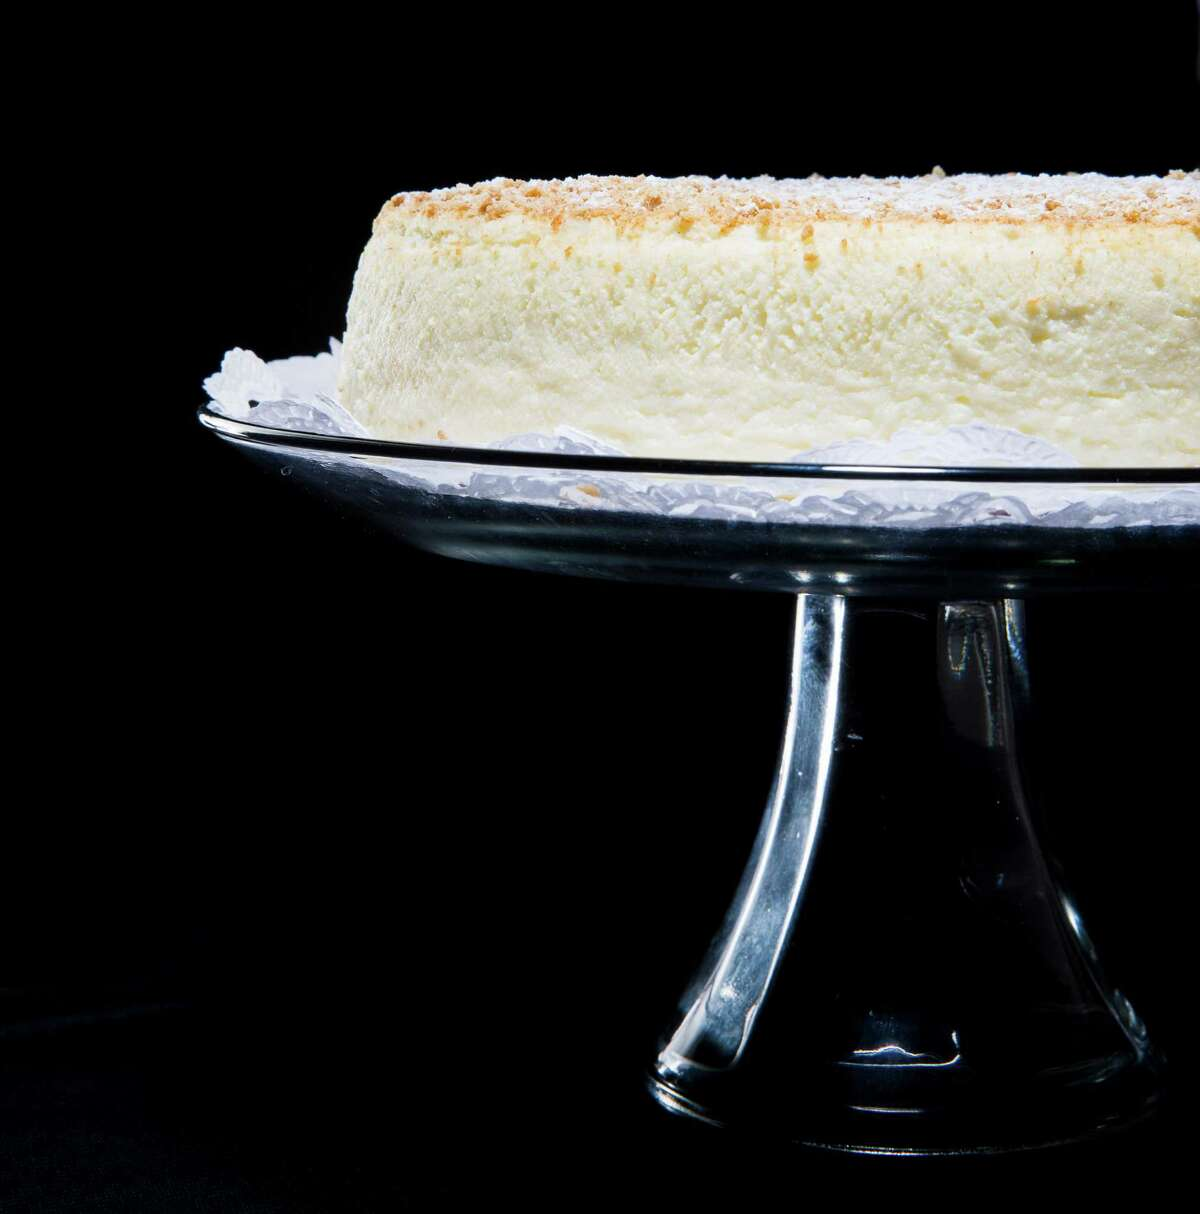 Sam Zanze's uses his father's cheesecake recipe, which doesn't use butter or flour. No dense graham cracker crust, either.